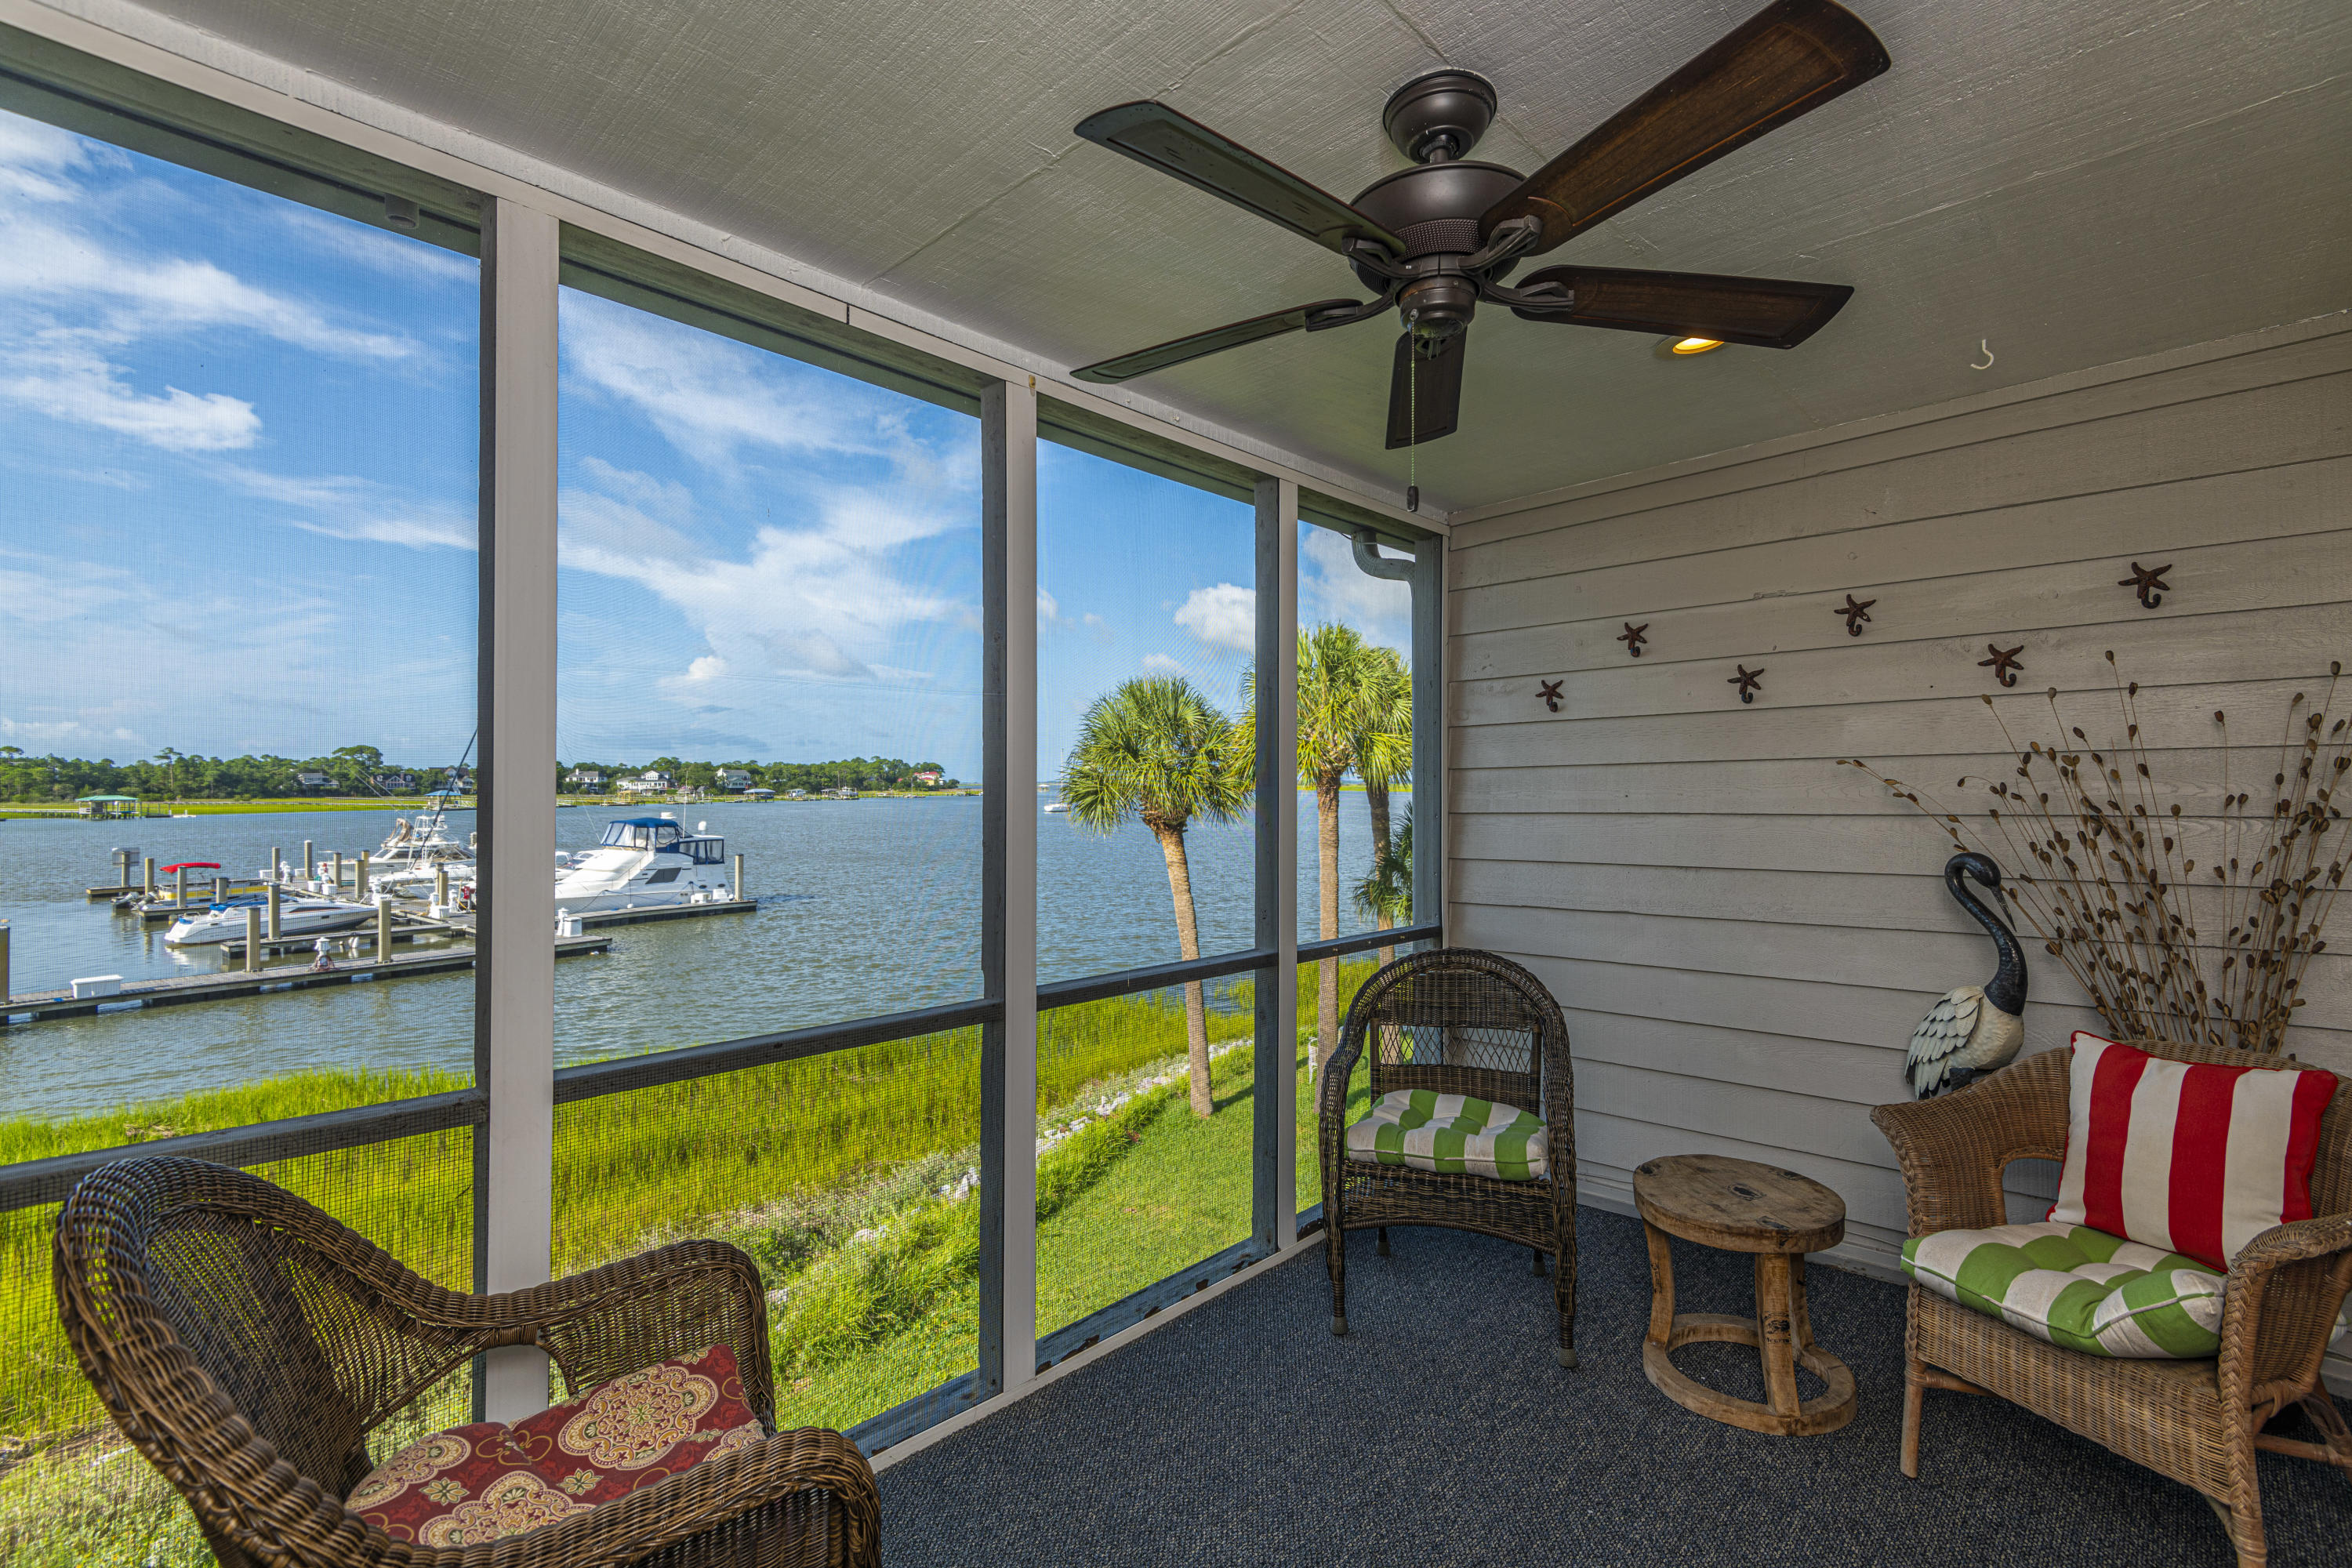 Mariners Cay Homes For Sale - 71 Mariners Cay, Folly Beach, SC - 11